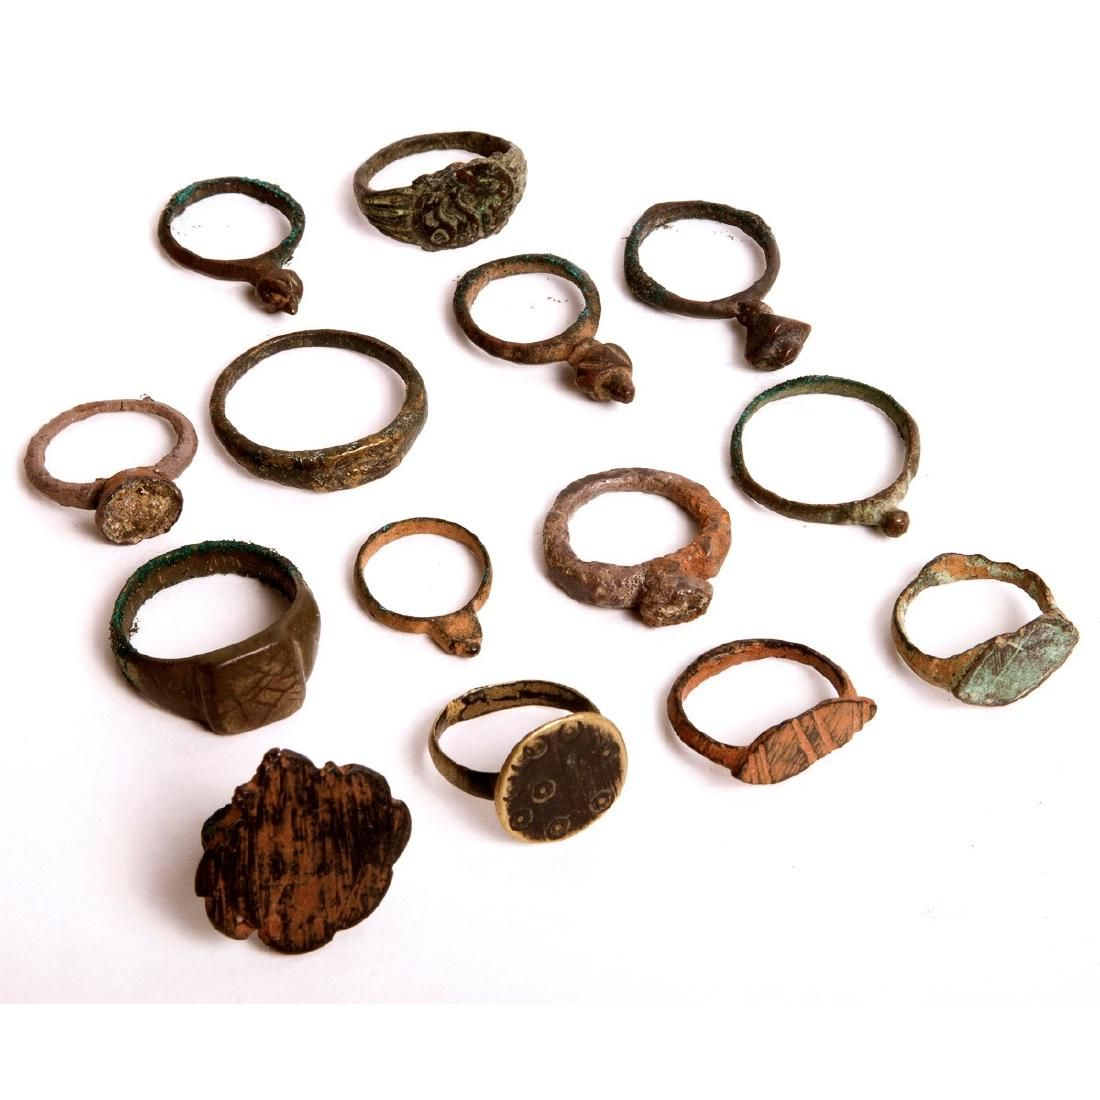 A Collection of 14 Ancient Roman Bronze Rings c.1st-4th